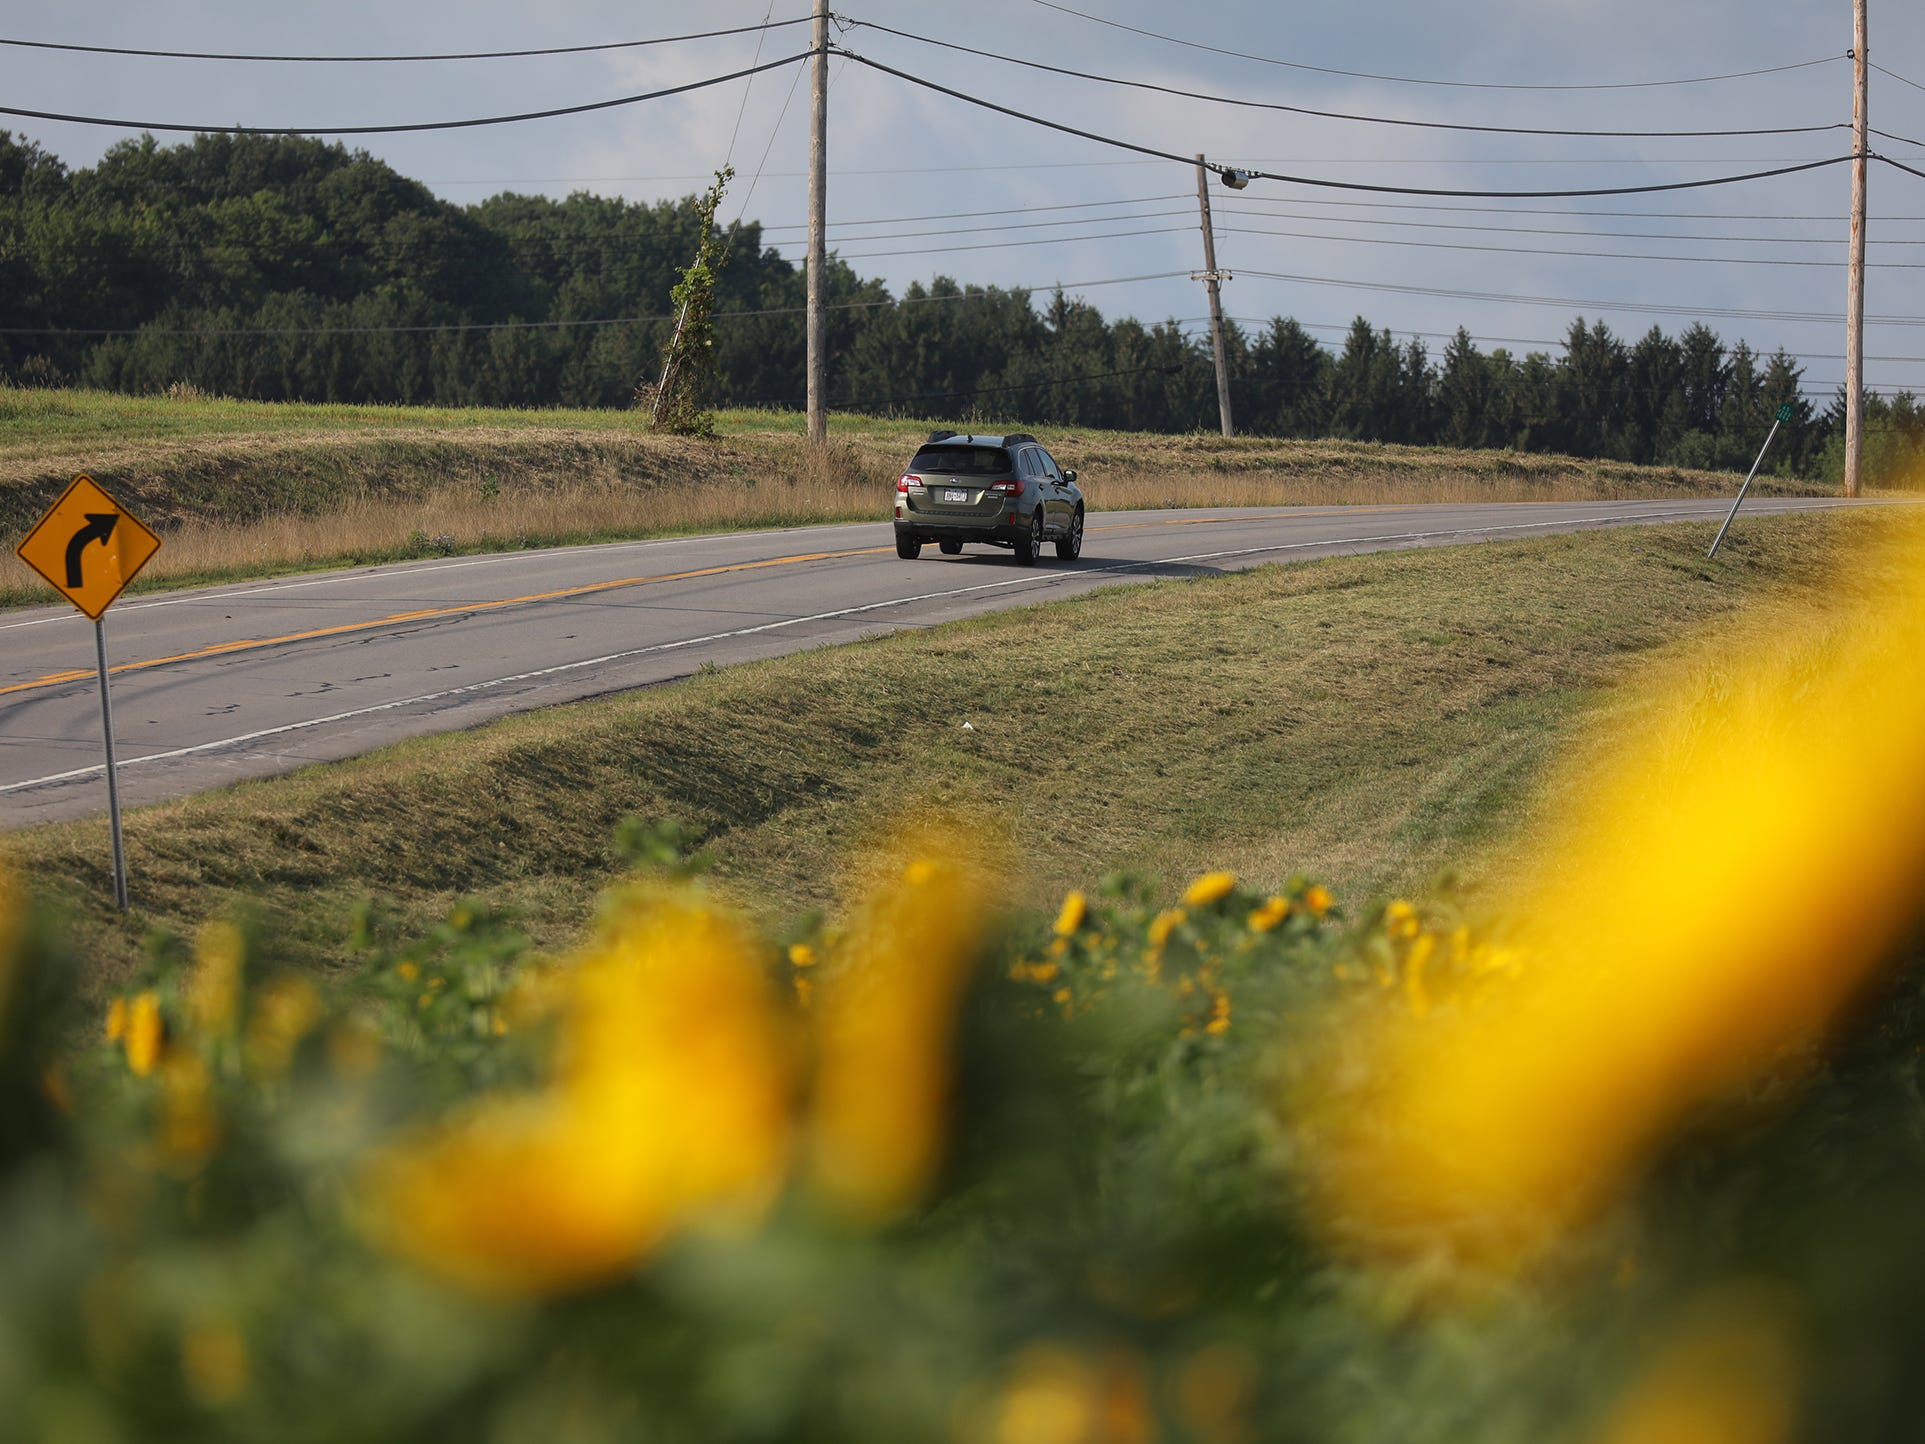 The sunflower crop is popular with area photographers.  The flowers are planted along a portion of Clover St. in Pittsford.